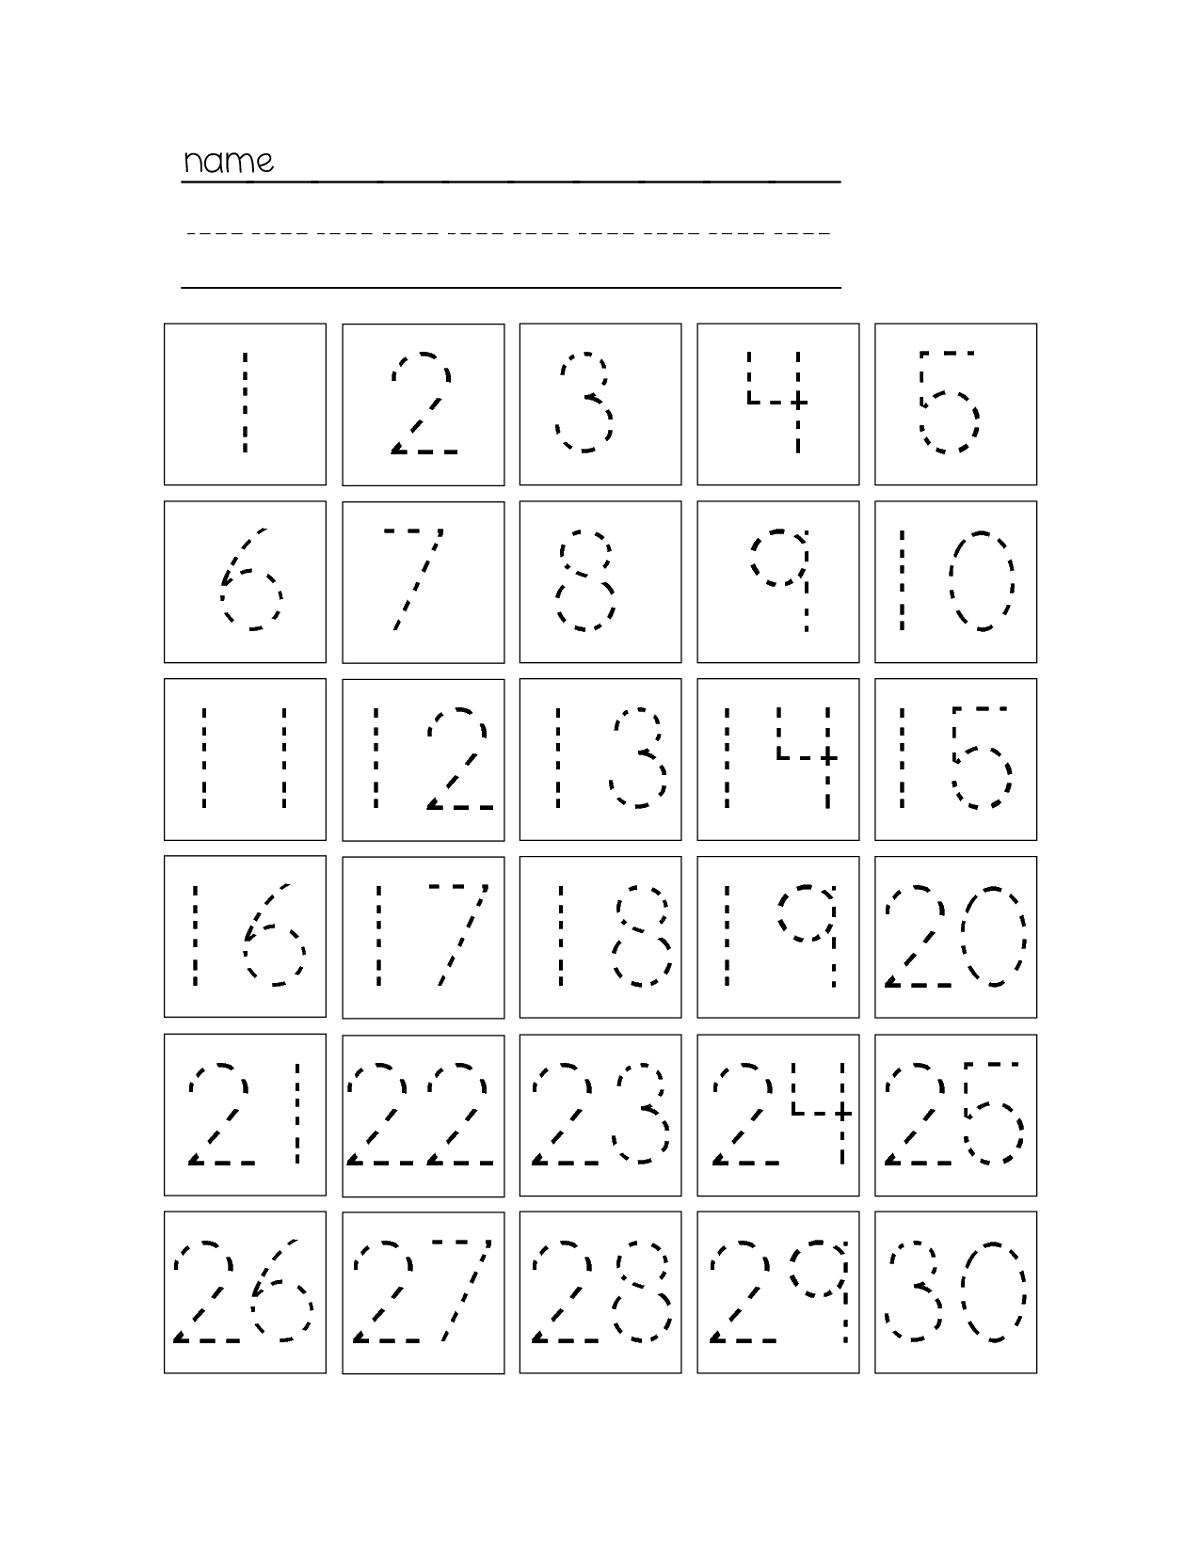 trace-number-worksheets-1-30